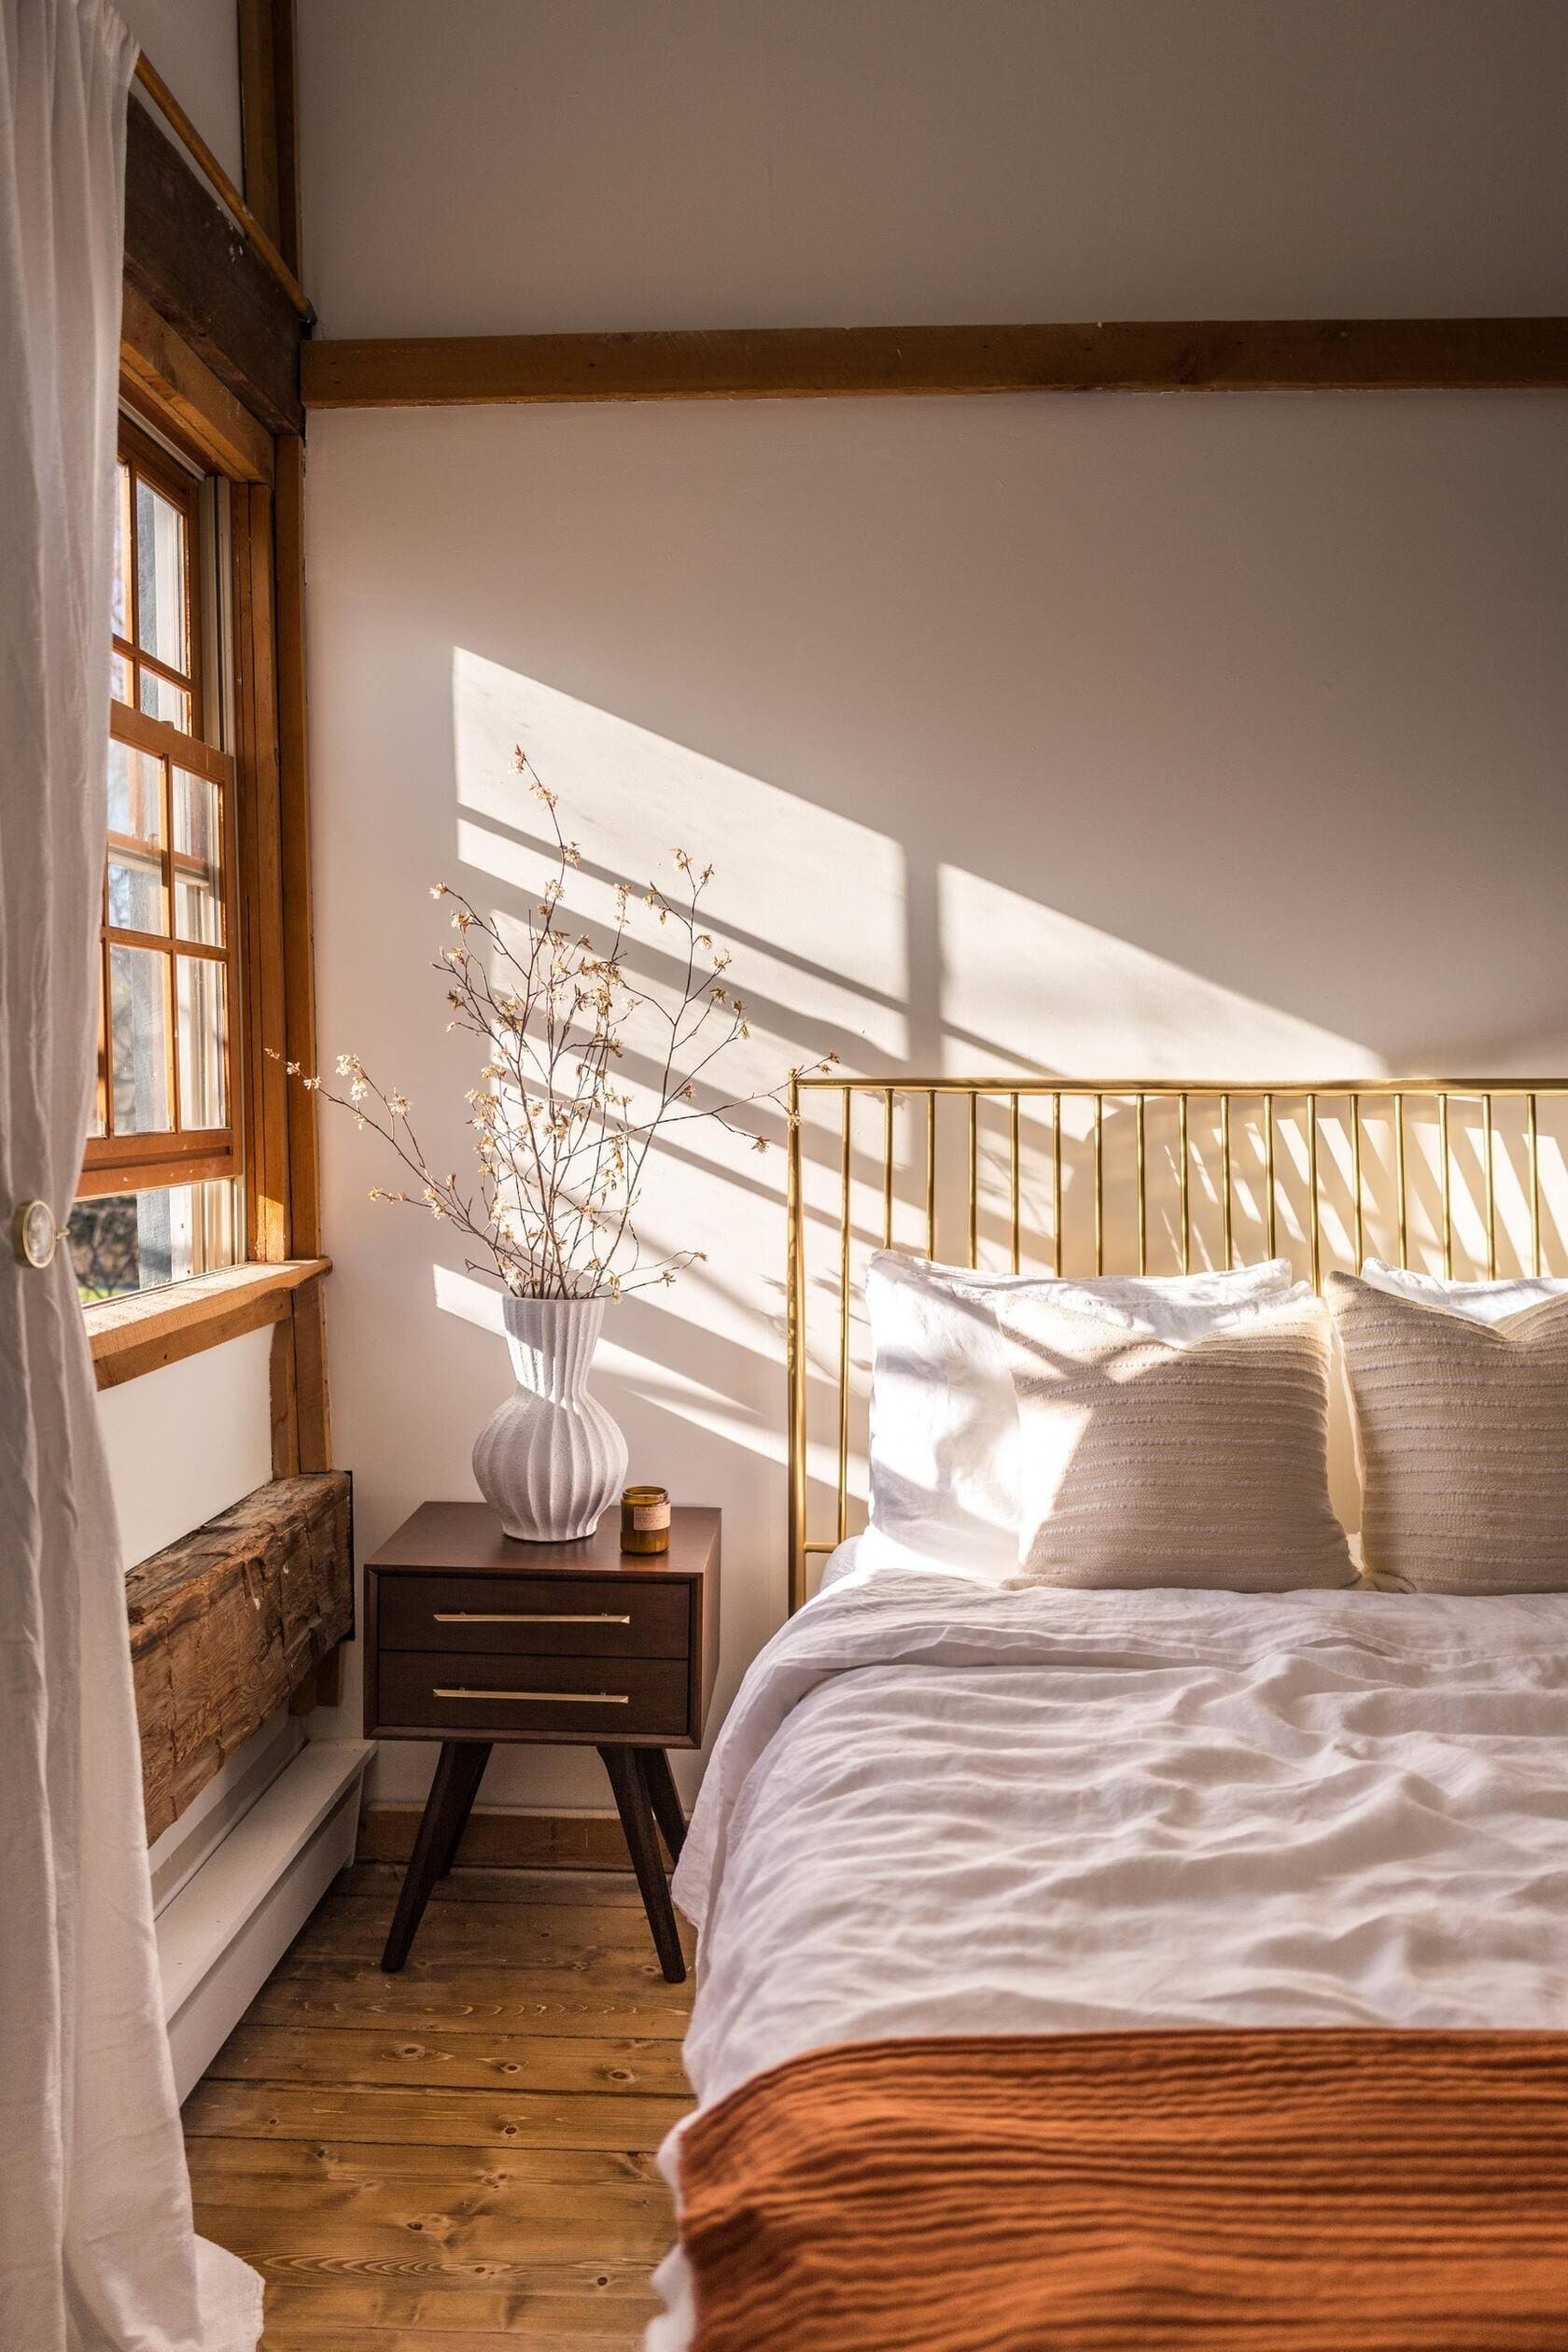 this is a bedroom with natural light shining through the window